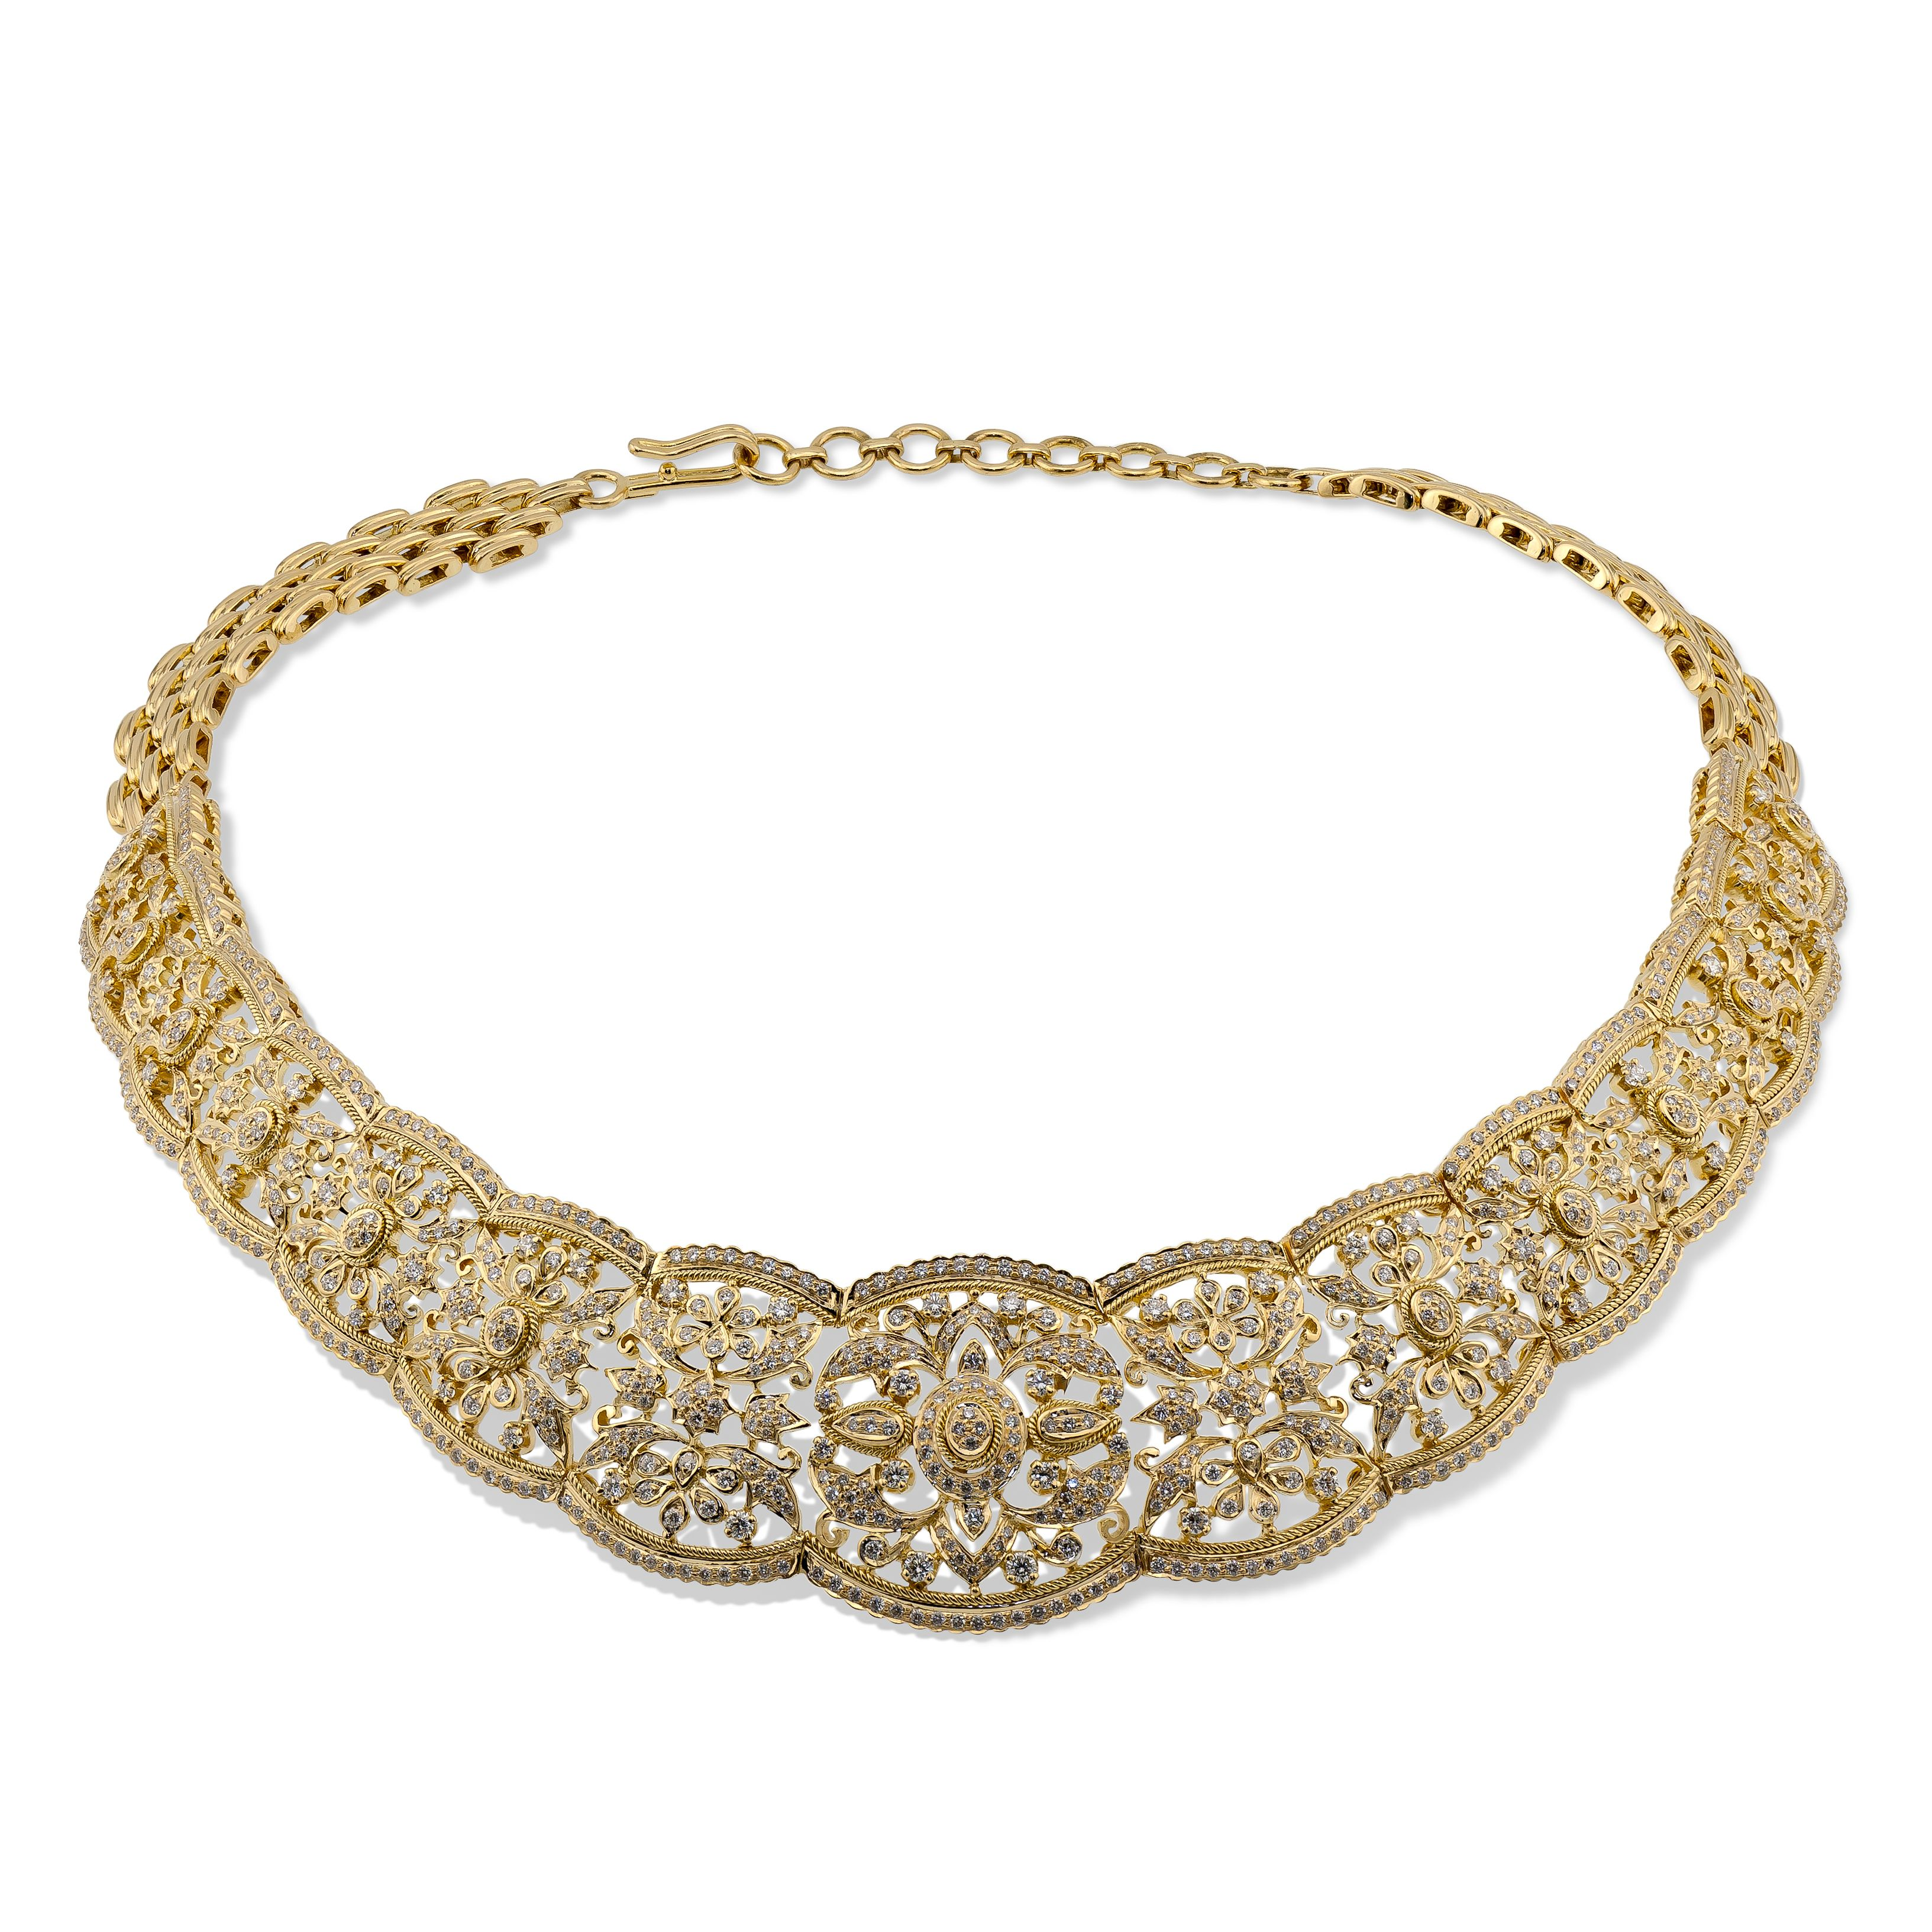 Like a bride's delicate veil on her wedding day, a mesmerizing net of floral craftsmanship steals your breath away in this beautiful necklace. Browse Devam bridal creations online.